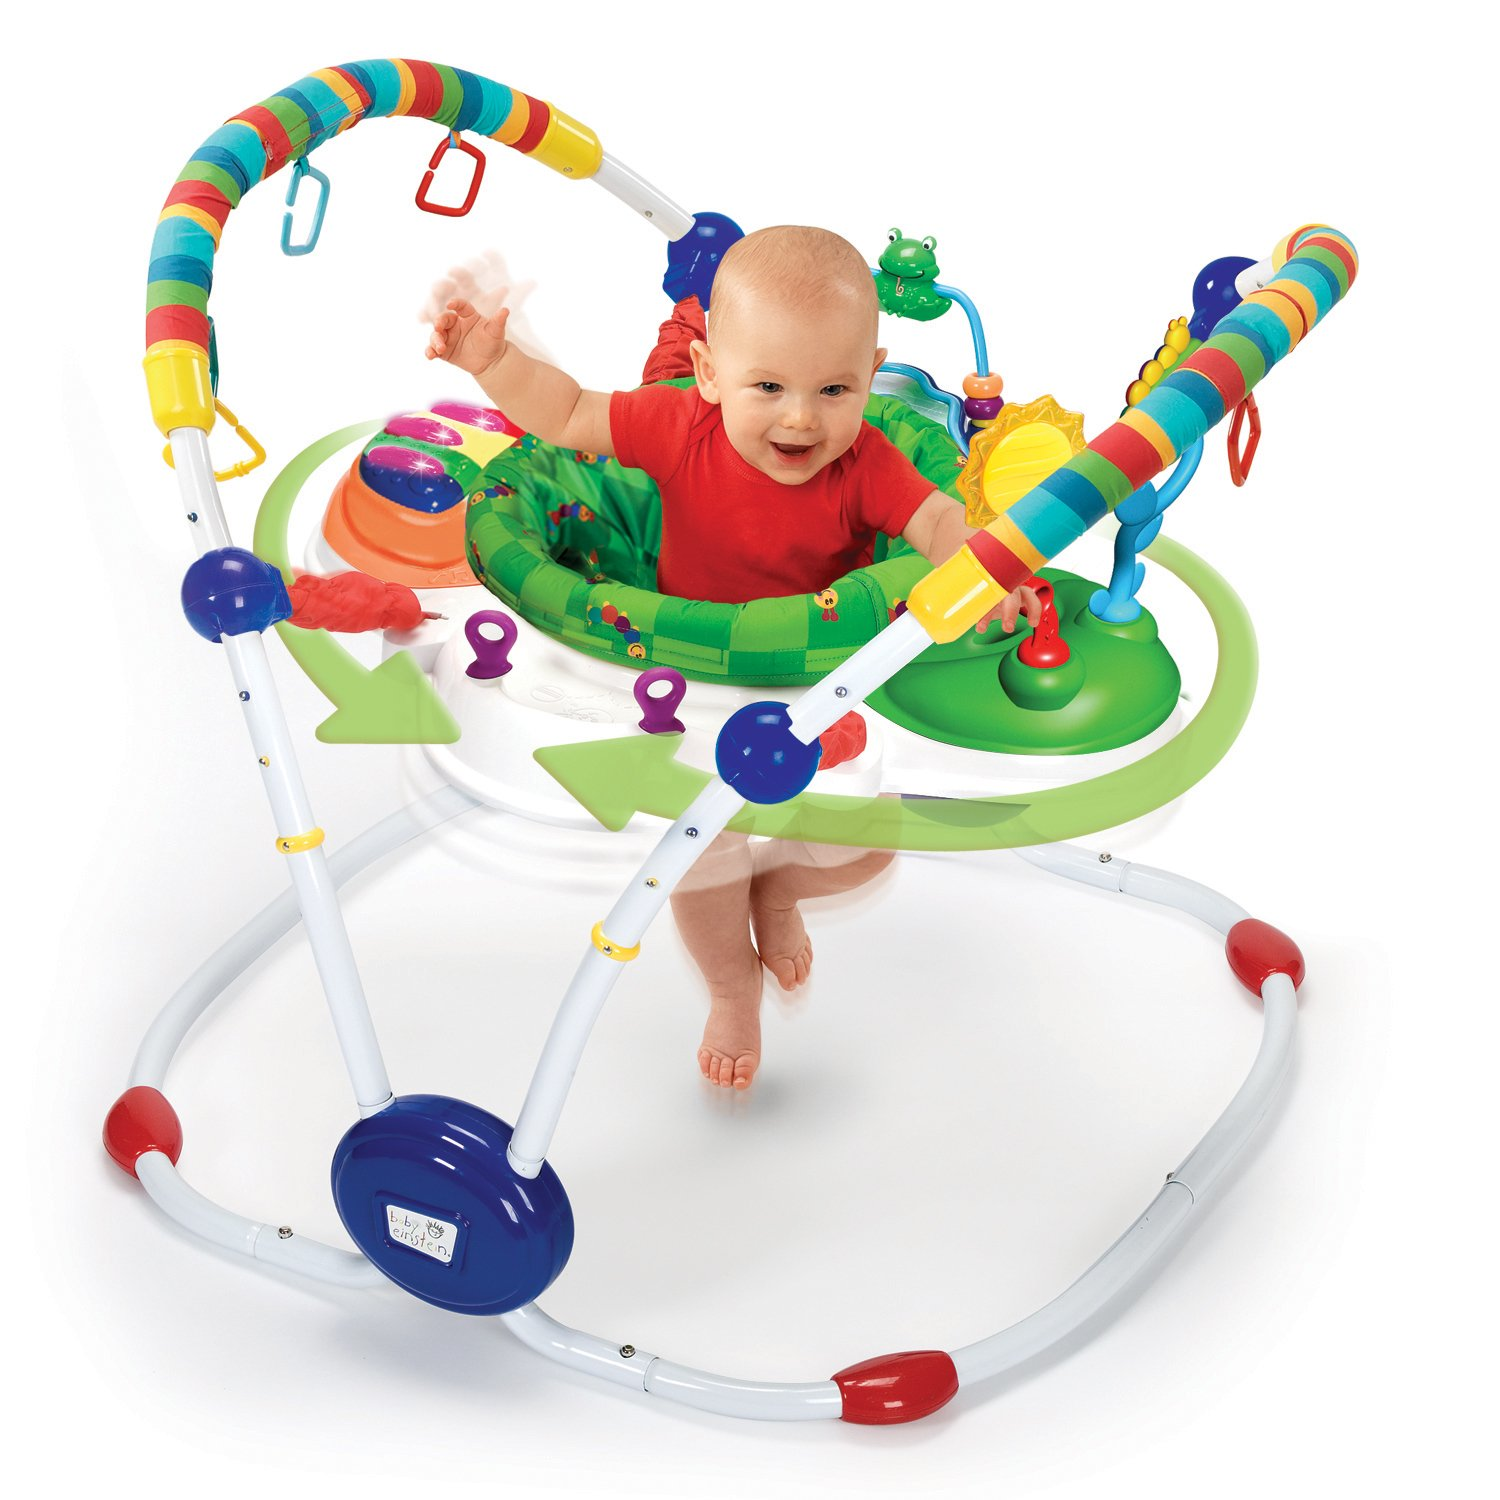 Amazon Baby Einstein Musical Motion Activity Jumper Green